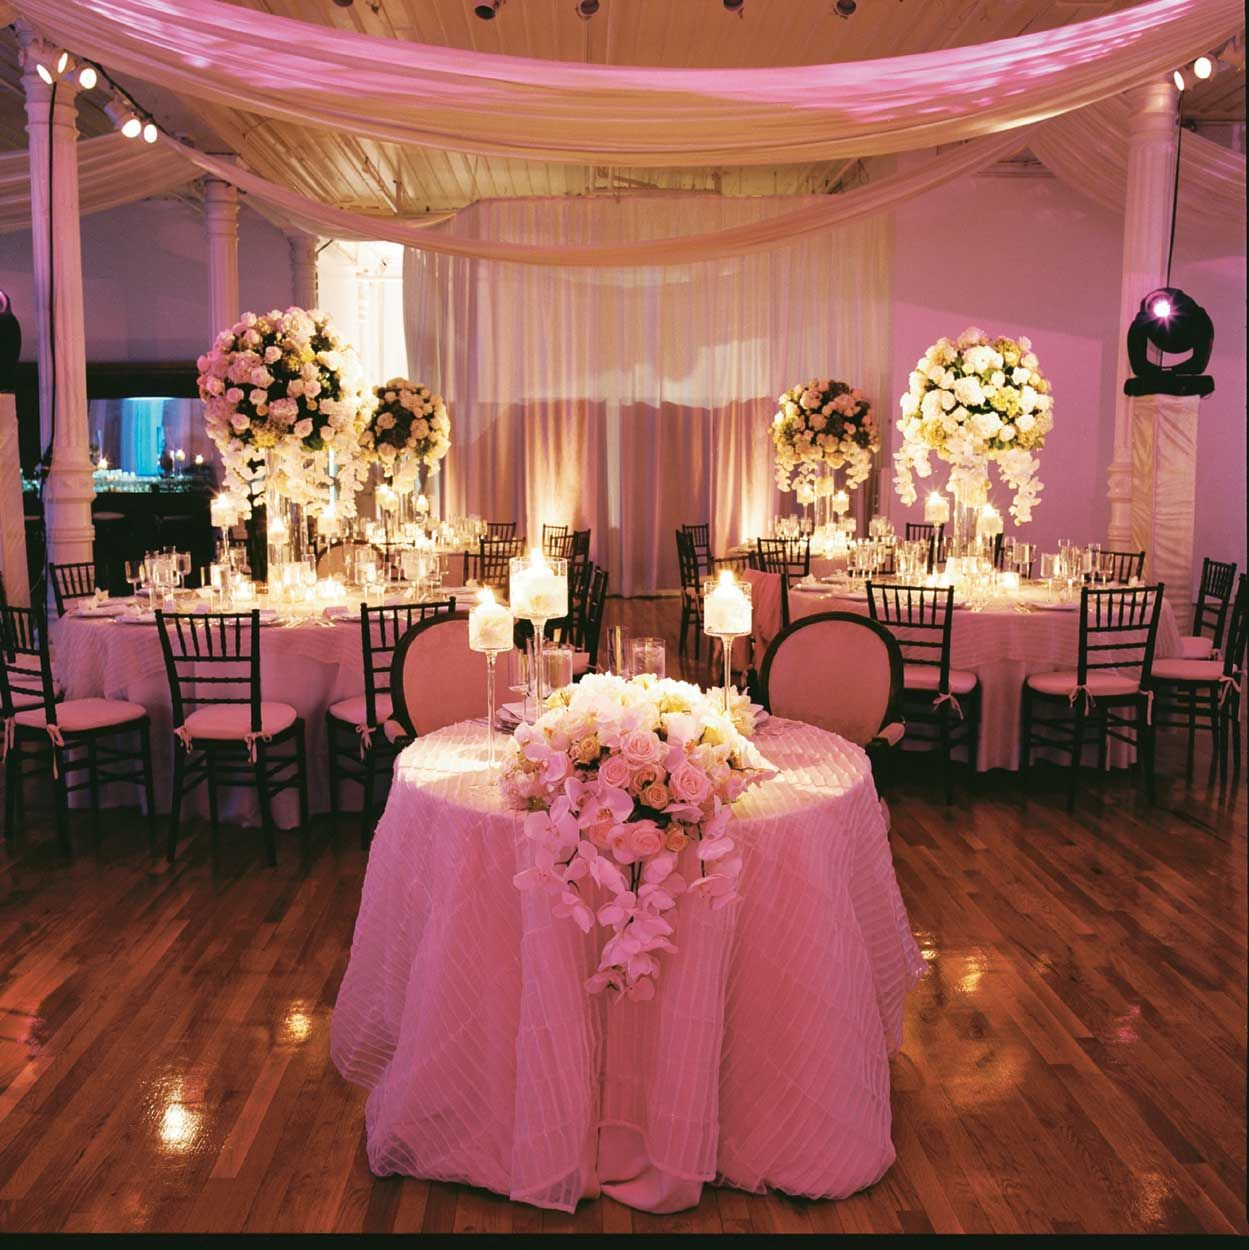 Wedding Decorations For Less: Luxe Wedding Receptions For Less